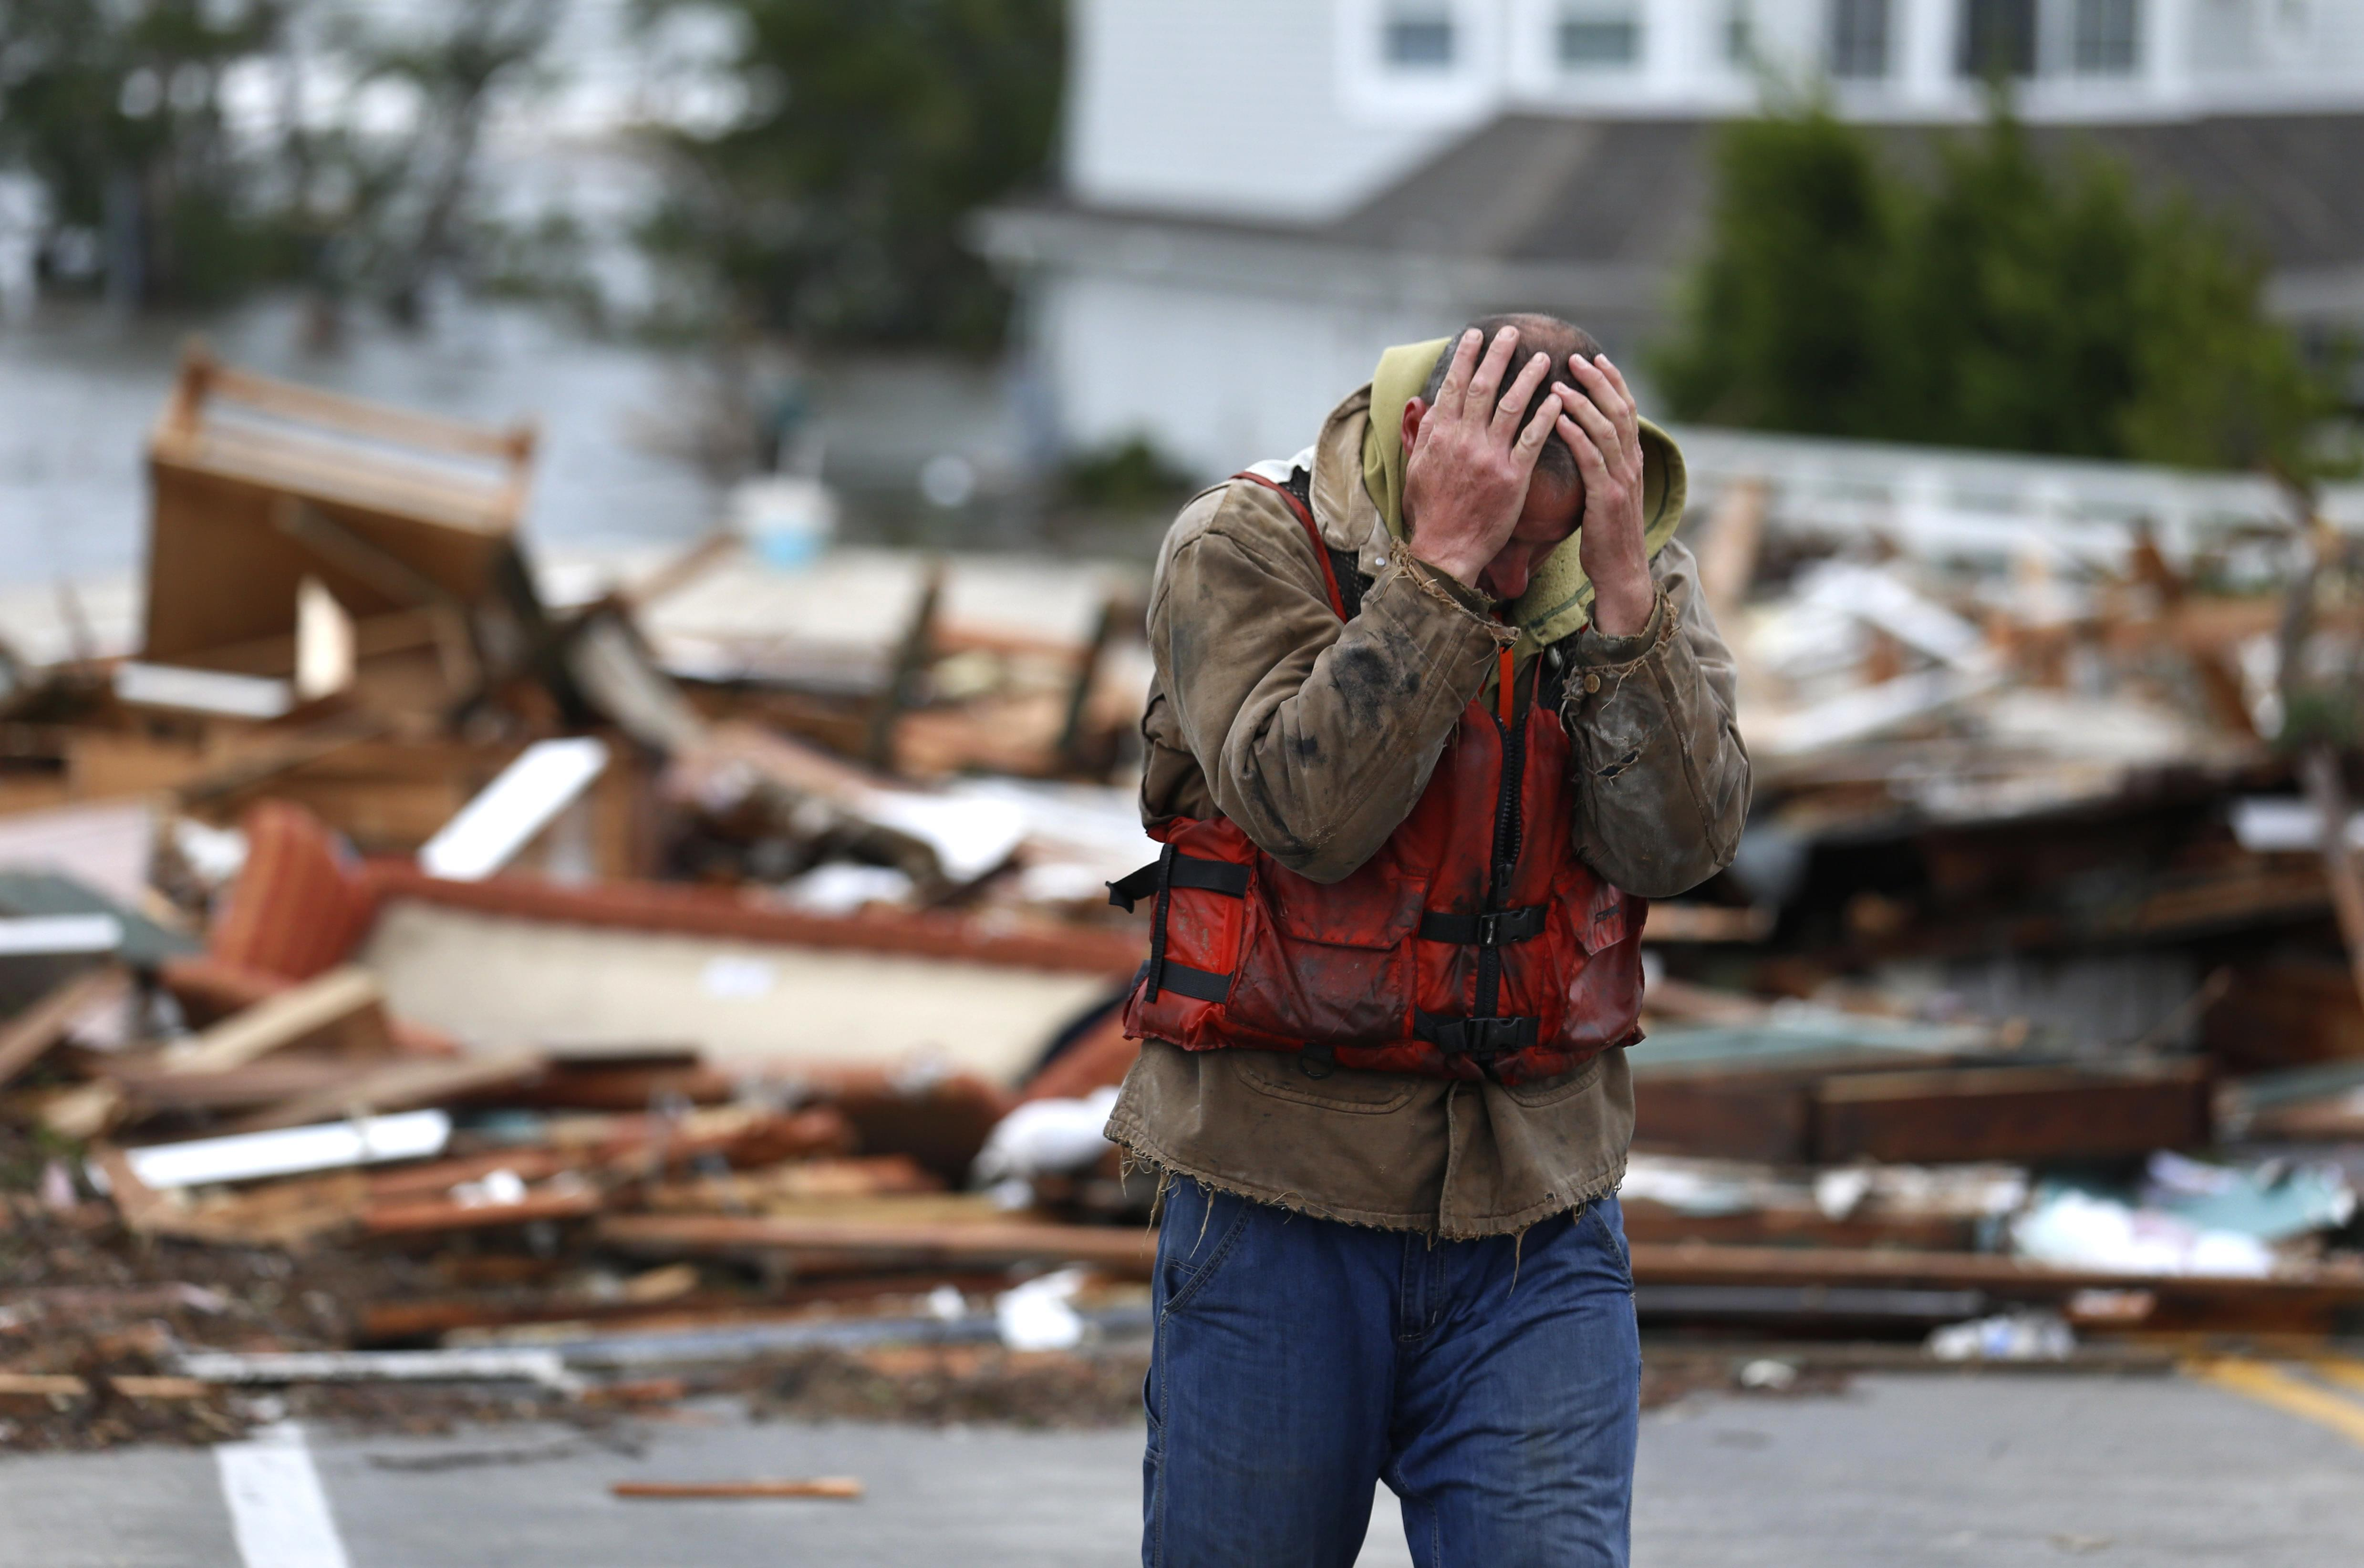 Brian Hajeski, 41, of Brick, N.J., reacts after looking at debris of a home that washed up on to the Mantoloking Bridge the morning after superstorm Sandy rolled through, Tuesday, Oct. 30, 2012, in Mantoloking, N.J.